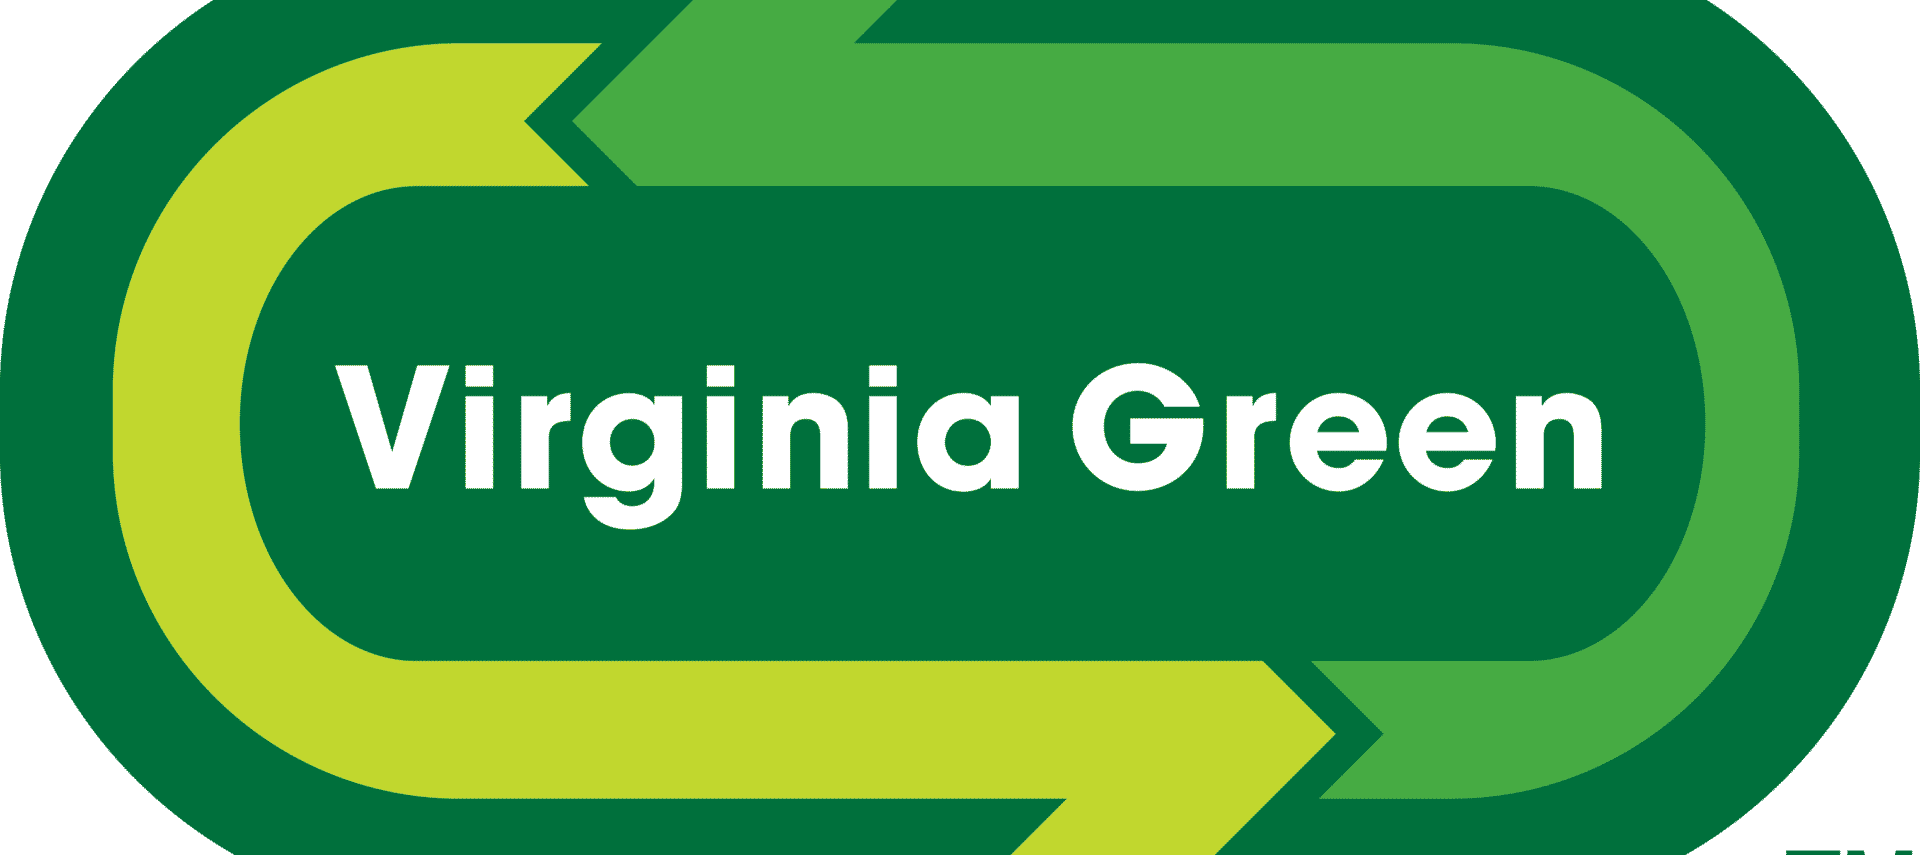 Logo for Virginia Green. Virginia Green written in white on green oval with arrows